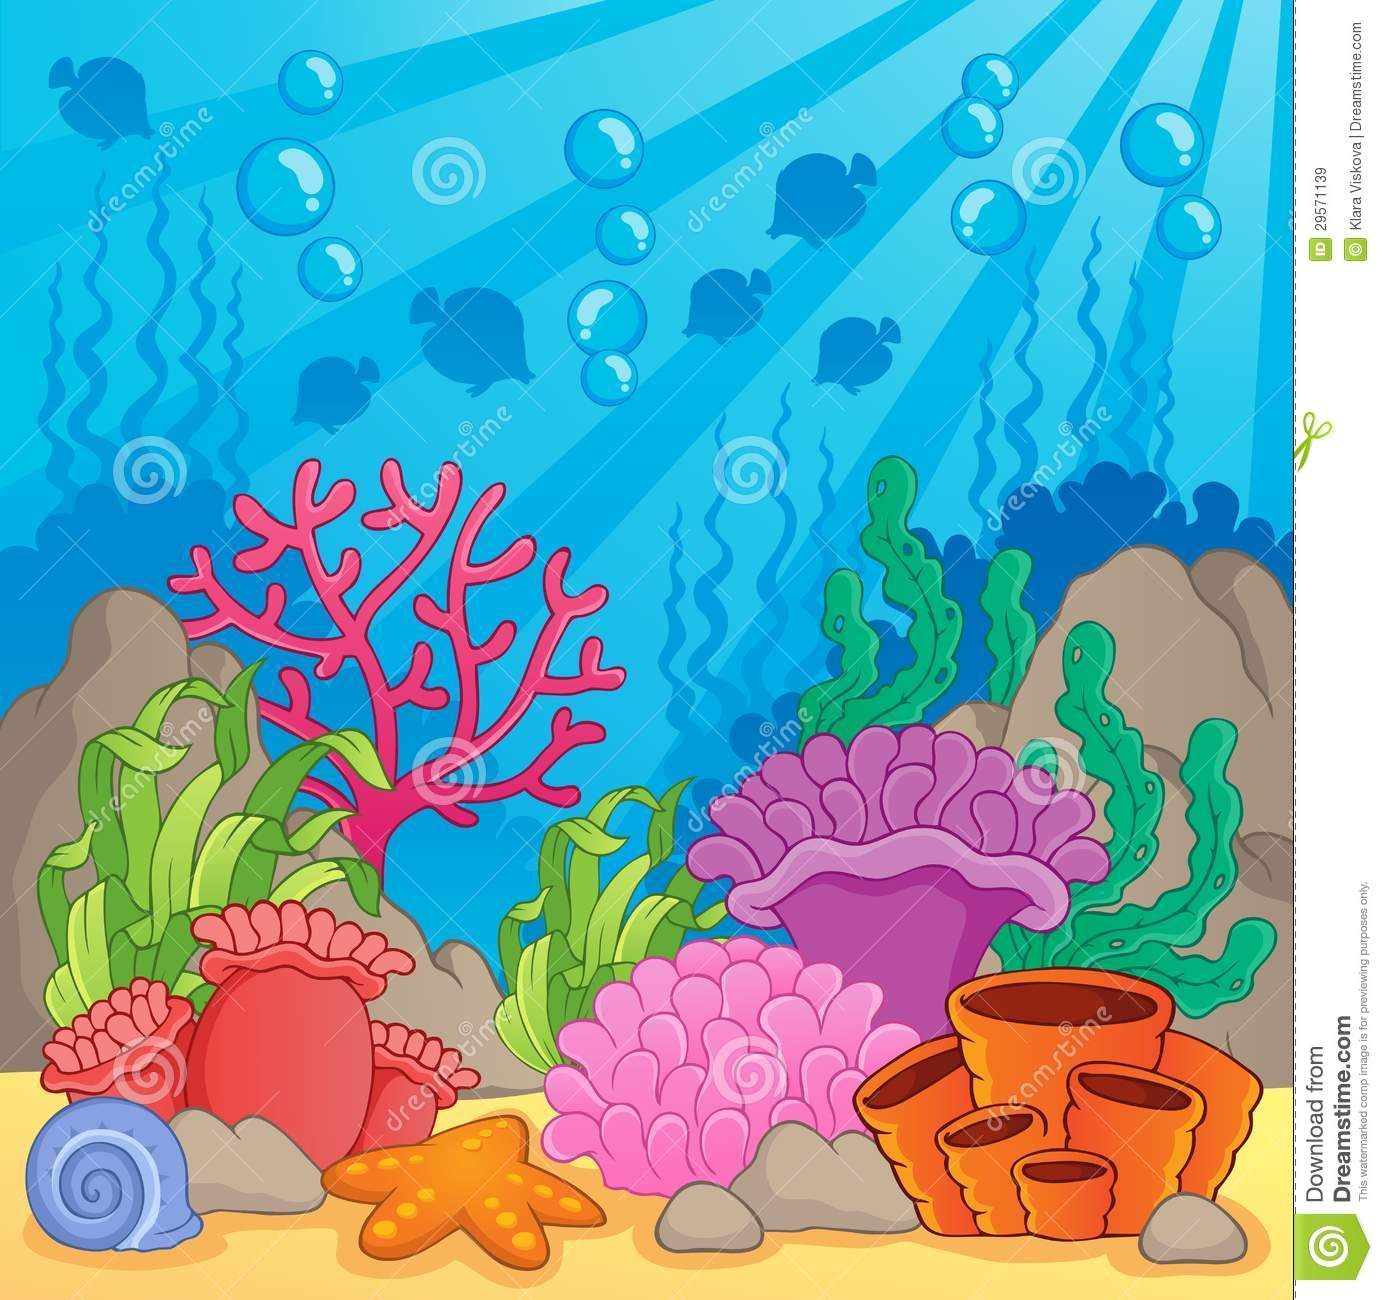 coral reef theme image 3 royalty free stock images image Treasure Chest Clip Art free treasure chest clipart images